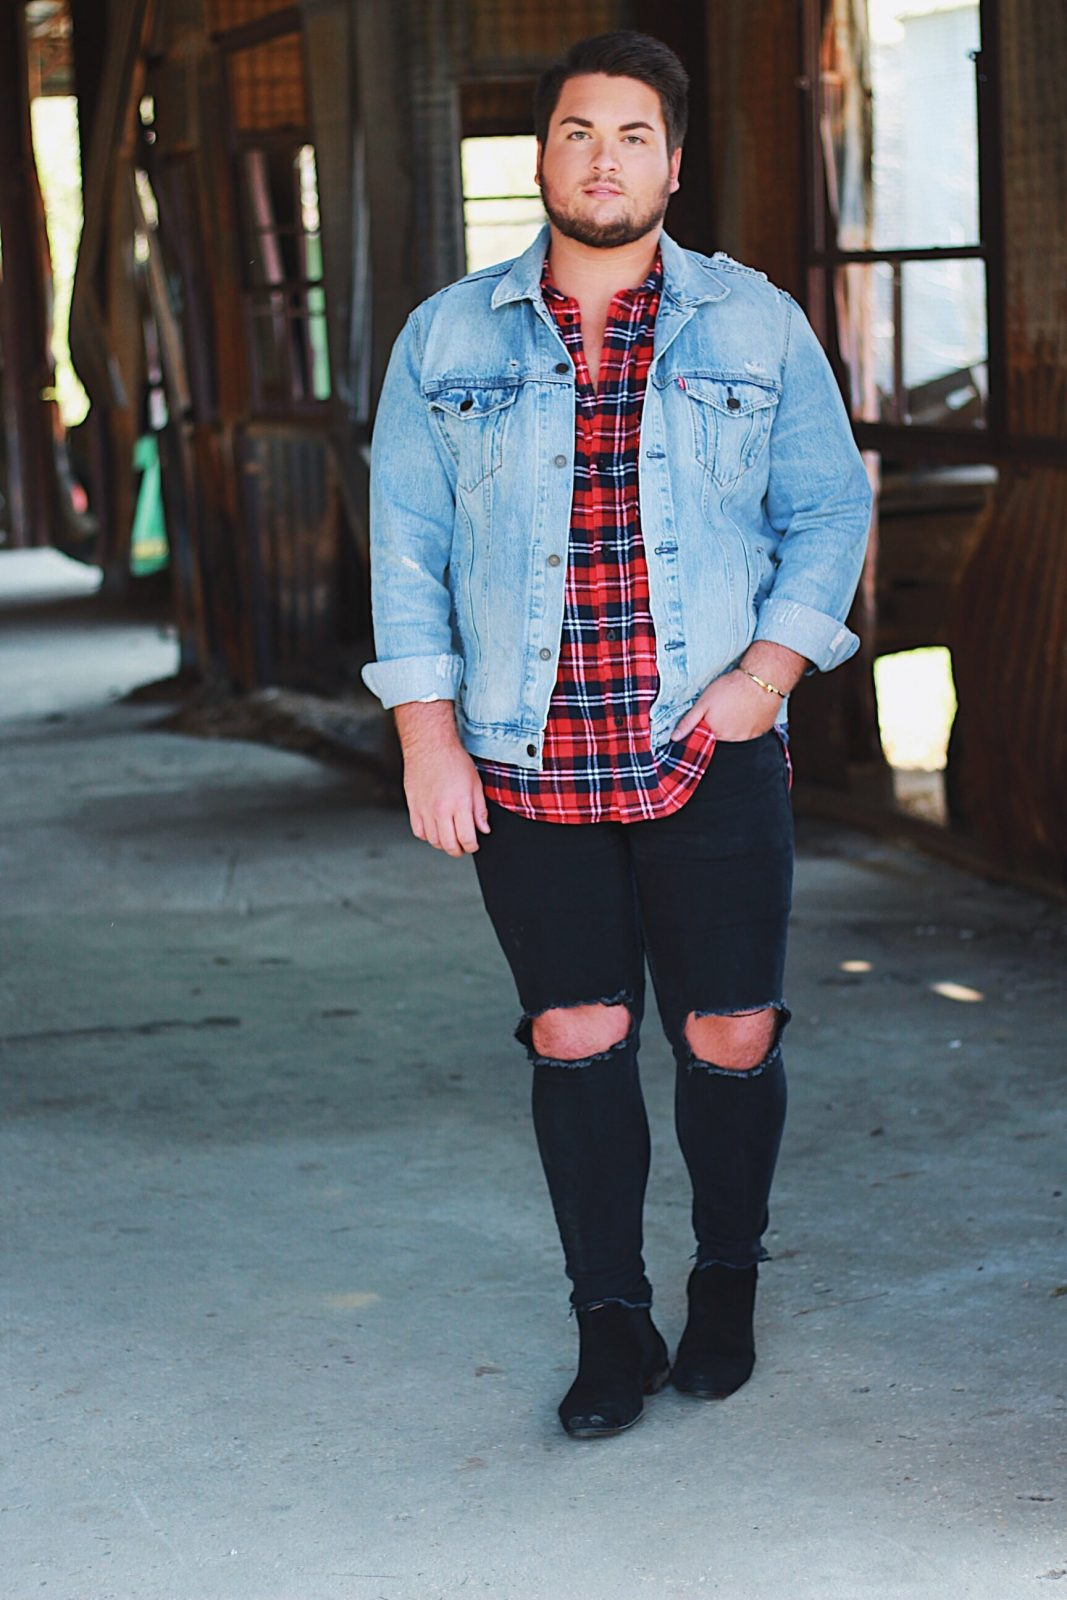 XL's Featured Tribes Men Of The Week: Cameron Thomas